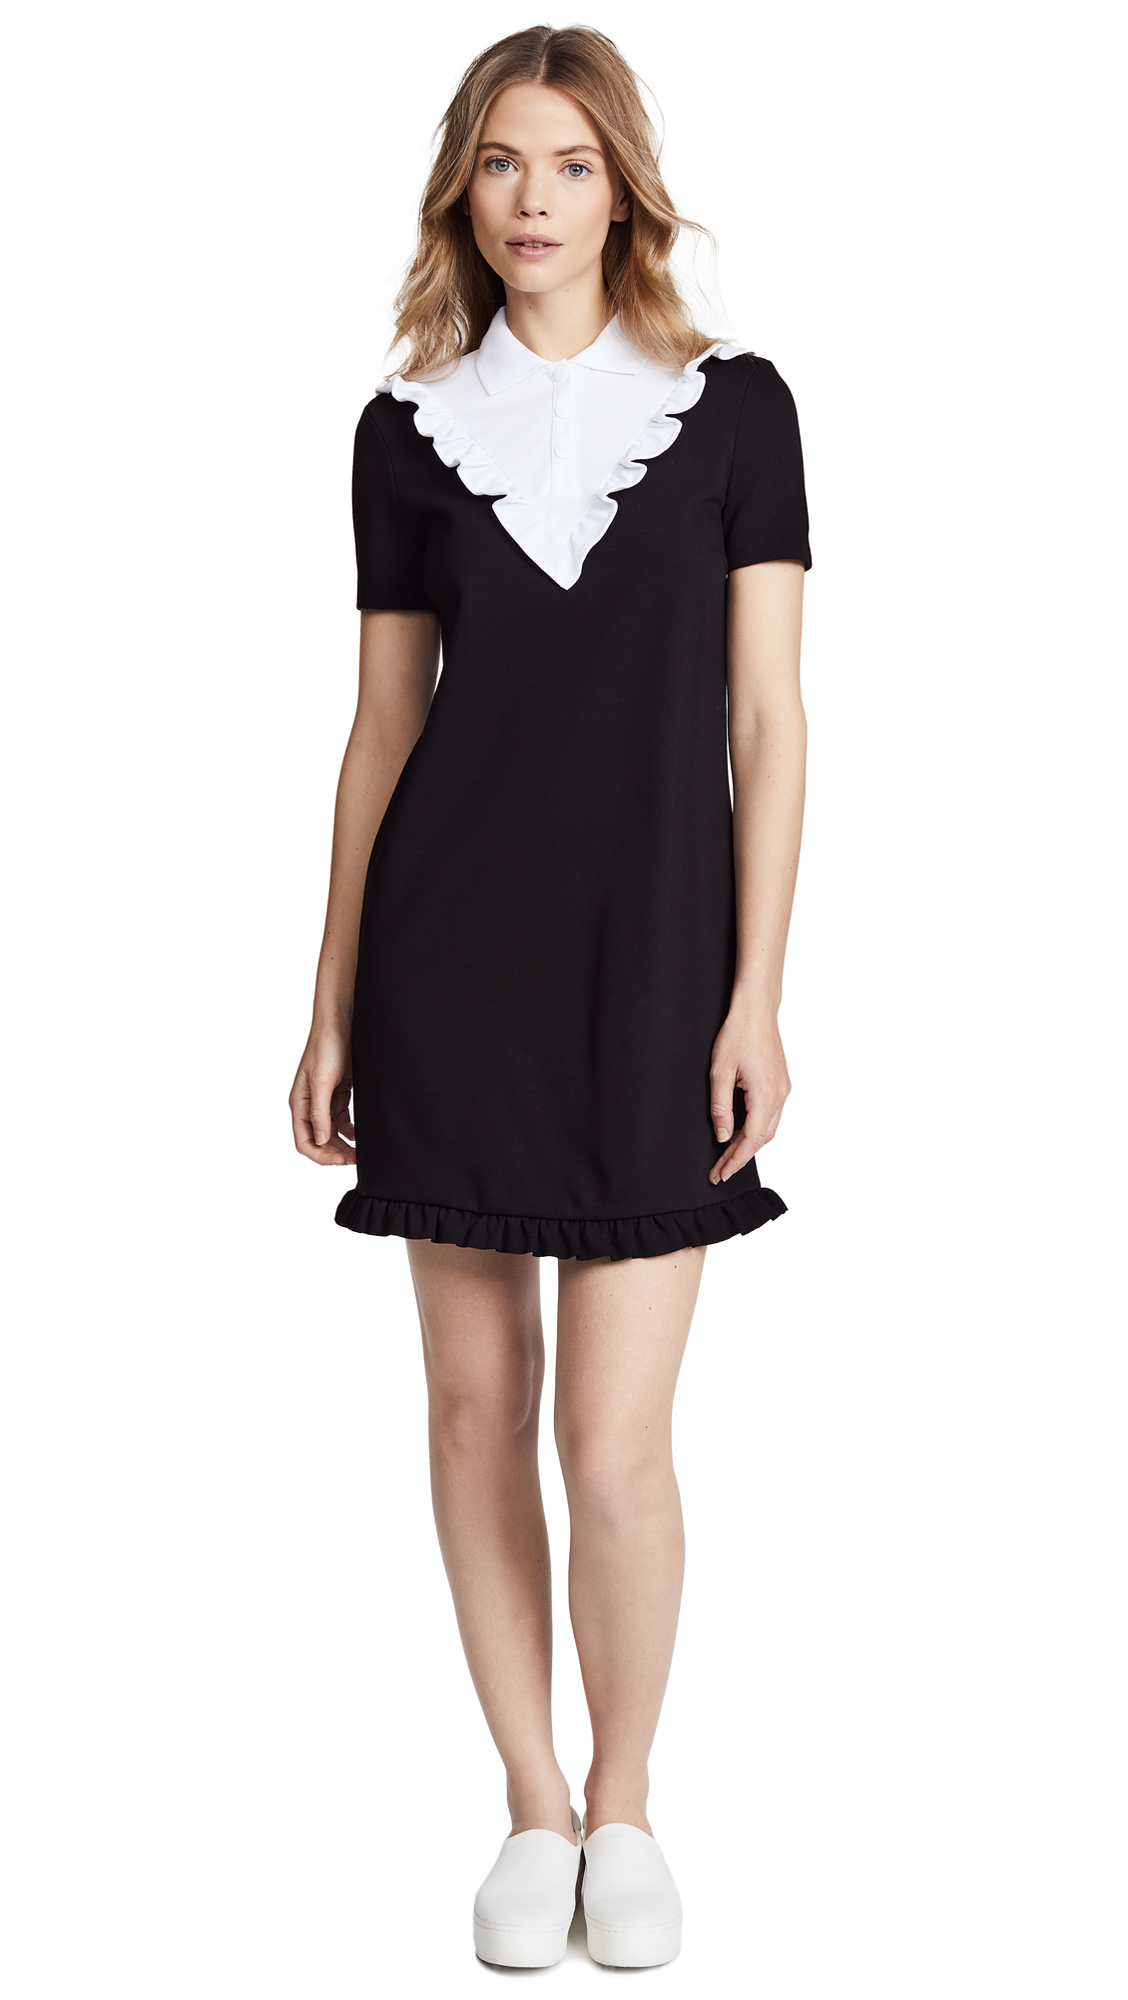 RED Valentino Bib Dress - Nero/Bianco